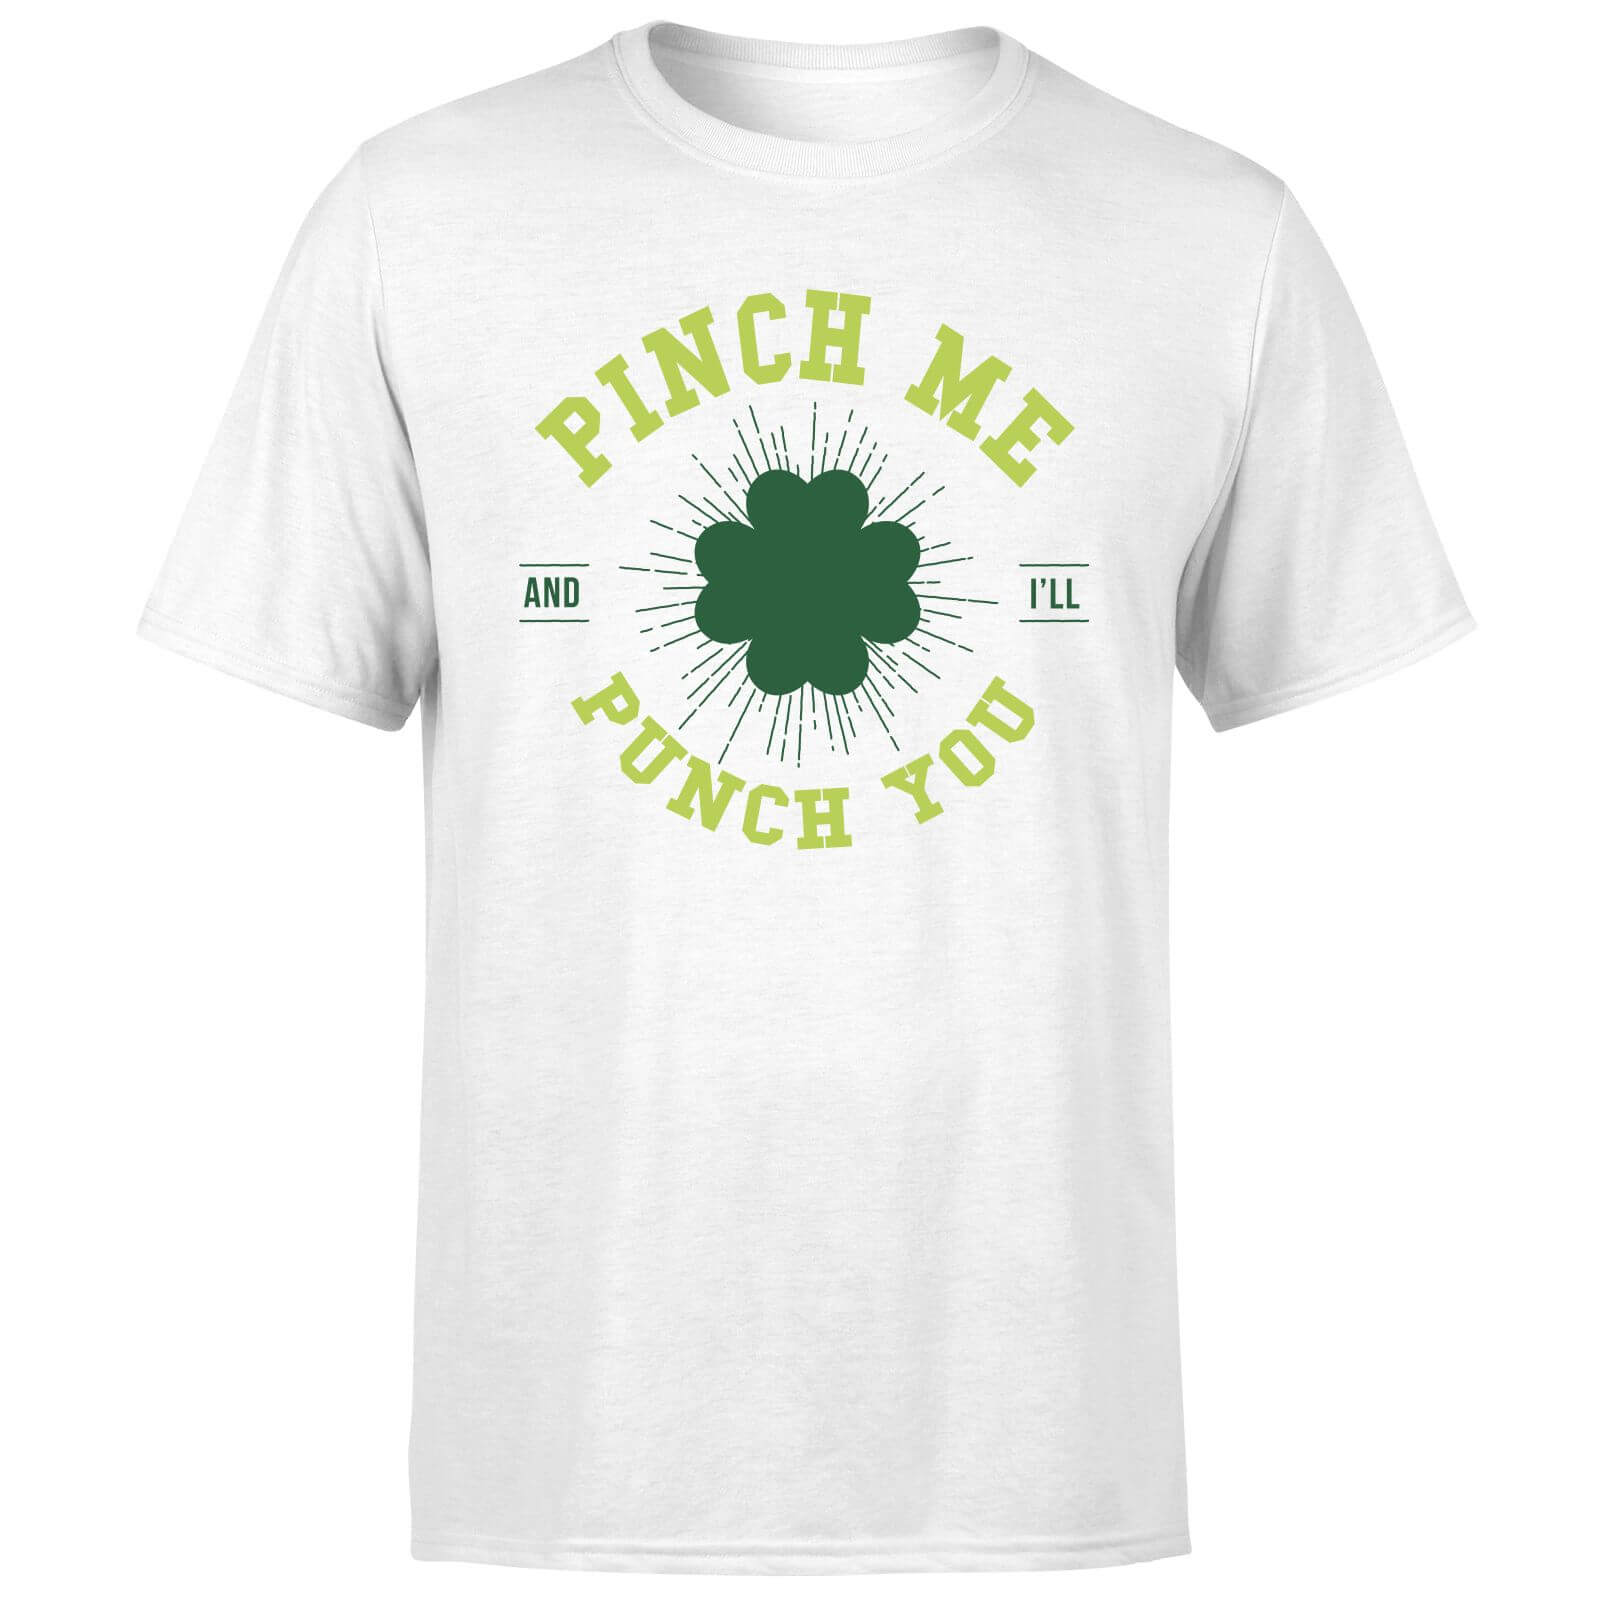 Beershield Pinch Me And Ill Punch You T-Shirt - White